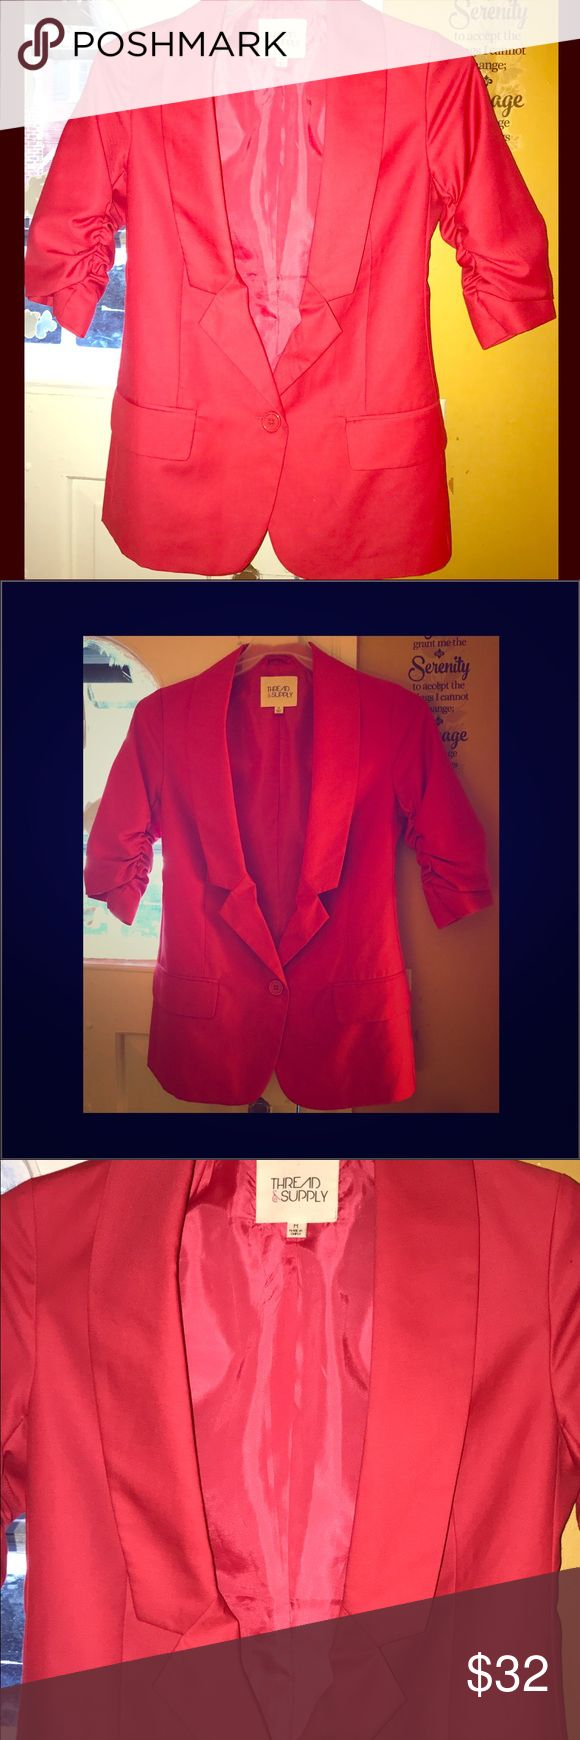 NWT THREAD & SUPPLY-Sexy Hot Pink Blazer! 😍💖🔥💋 NWT THREAD & SUPPLY-Sexy Hot Pink Blazer! 😍💖🔥💋 Brand new! Never Worn! Gorgeous color and detail! Ruffled sleeves! Absolutely stunning! No tears, pulls, stains or odors! Smoke/Pet Free Home!! Bundle & Save!! Thread & Supply Jackets & Coats Blazers